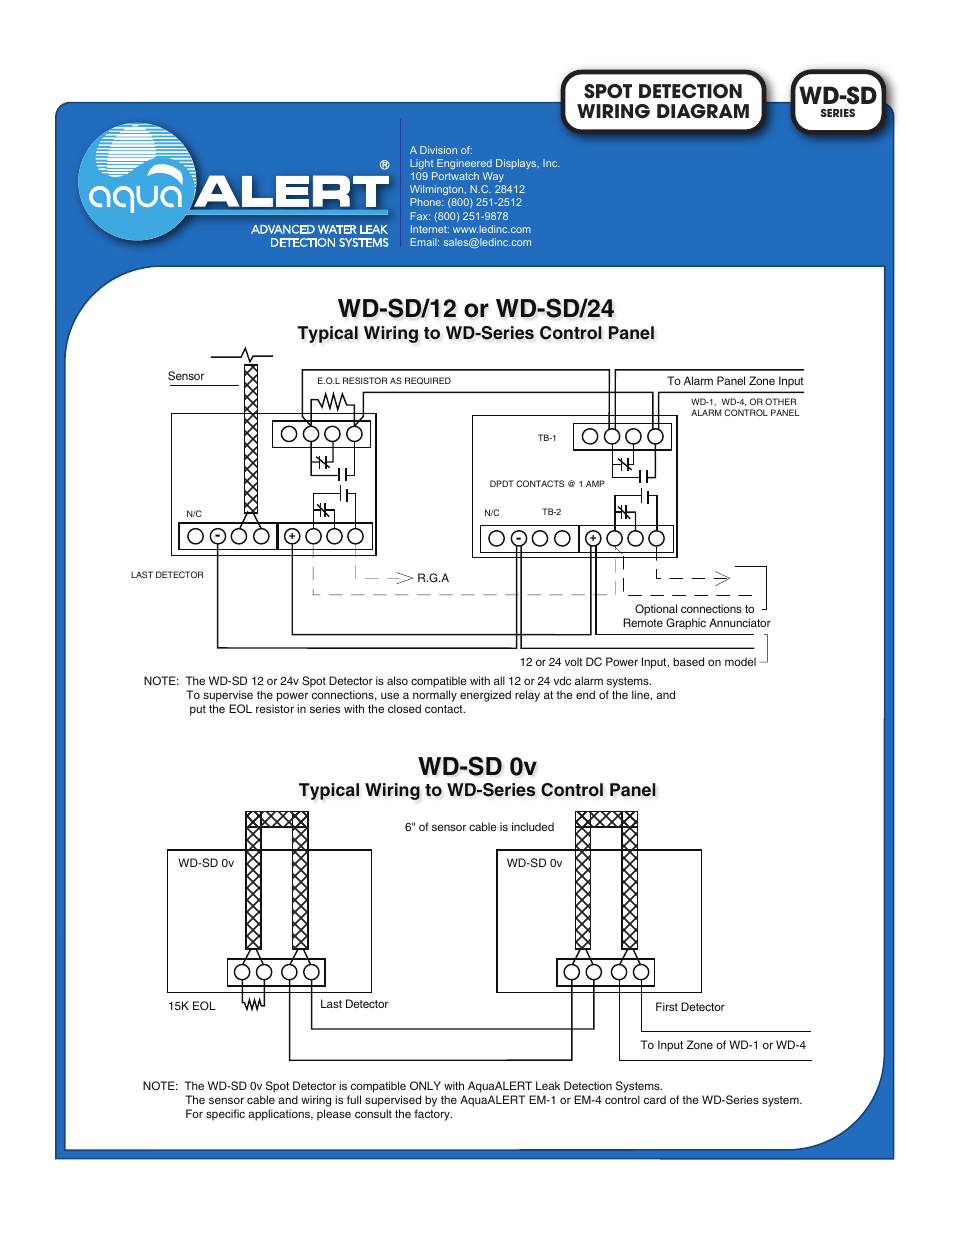 Light Engineered Displays Wd-sd Series